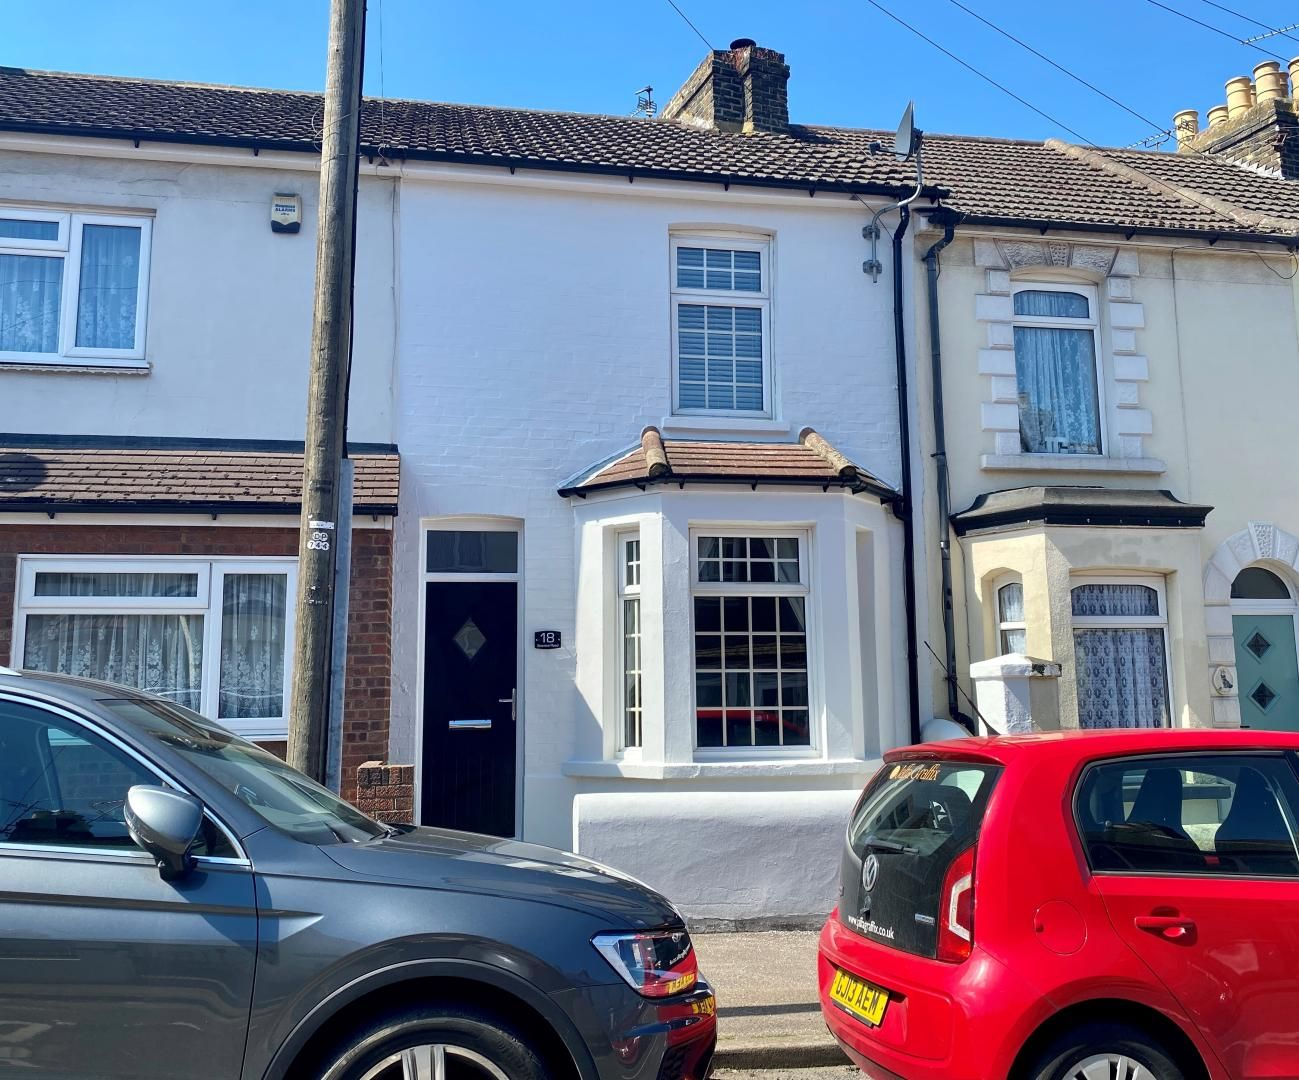 3 bed house for sale in Seaview Road, ME7